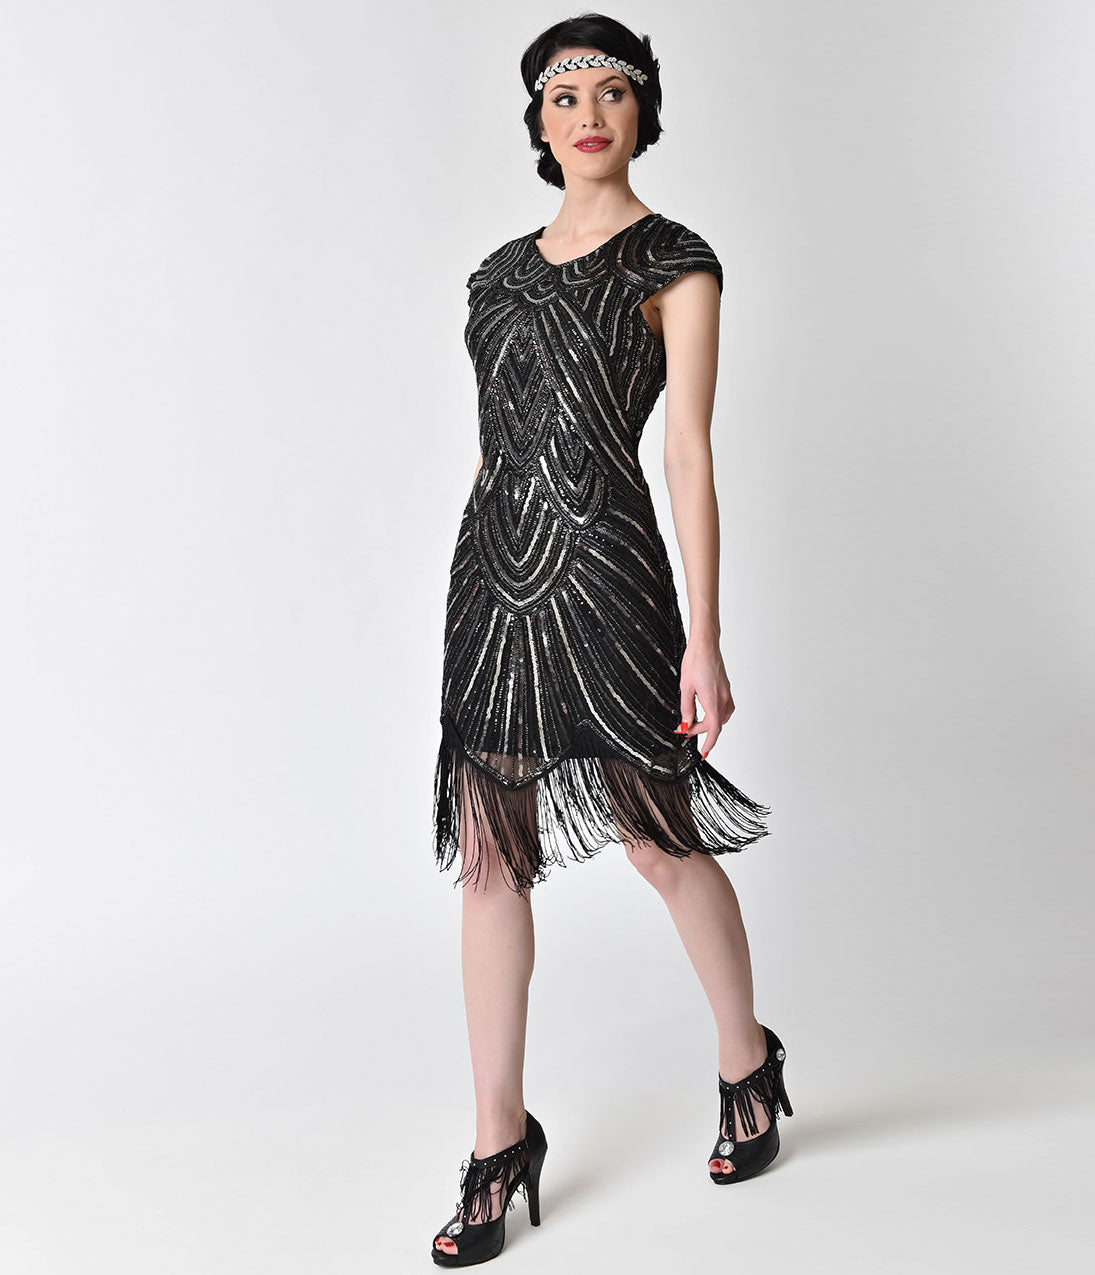 Roaring 20s Costumes- Flapper Costumes, Gangster Costumes 1920s Style Black  Silver Sequin Mesh Cap Sleeve Fringe Flapper Dress $88.00 AT vintagedancer.com